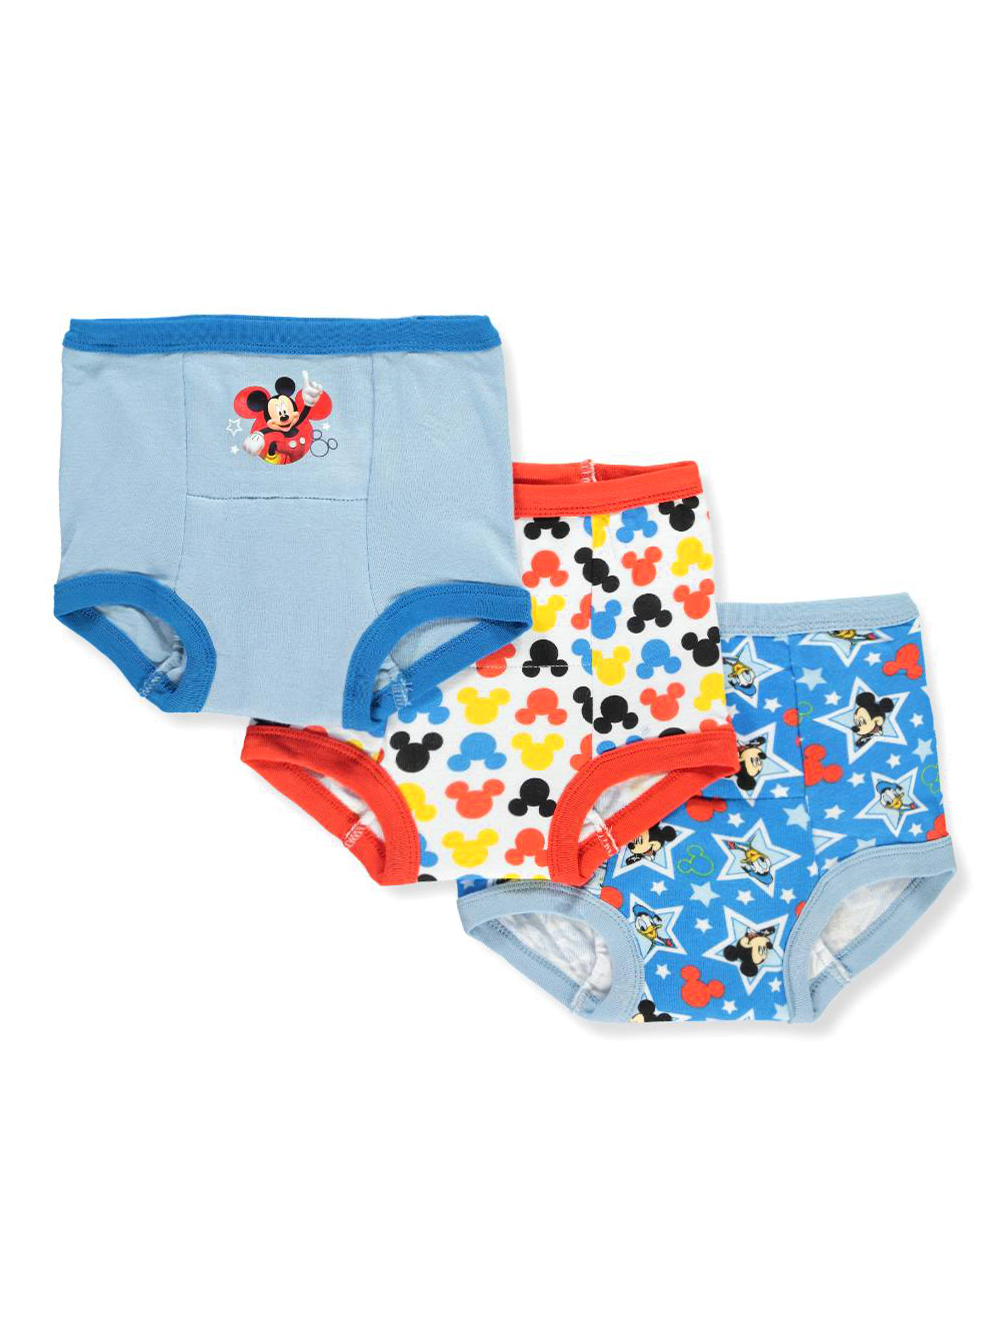 Disney Mickey Mouse Boys 5 Pack Underwear Briefs Pants Set